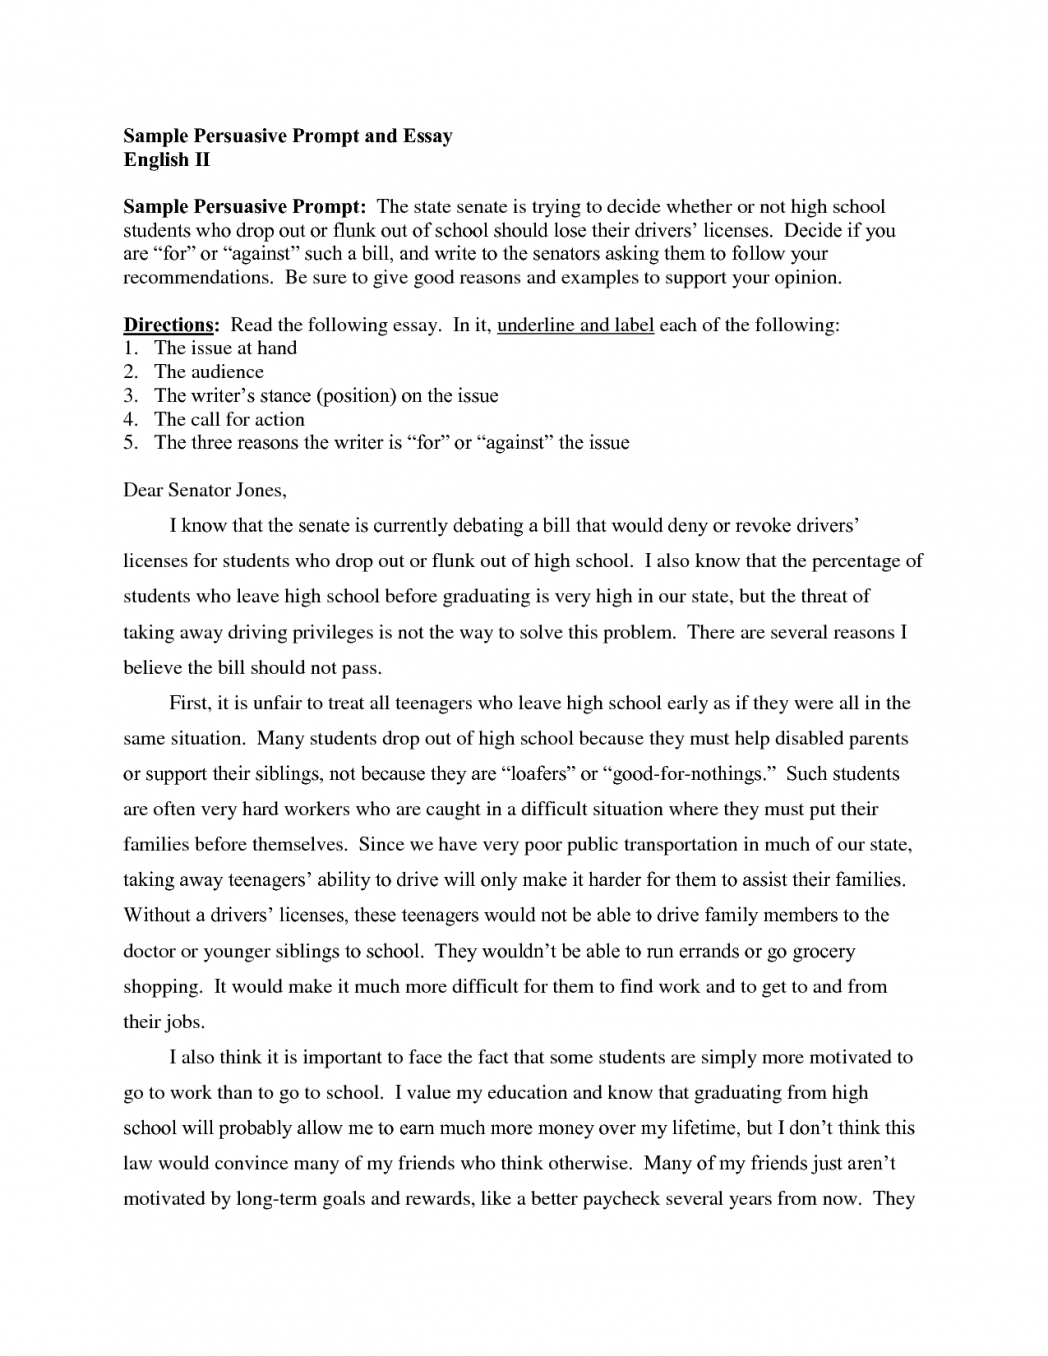 007 Essay Example How To Write Outstanding A Persuasive For Middle Schoolers Ap Lang In Spanish Full